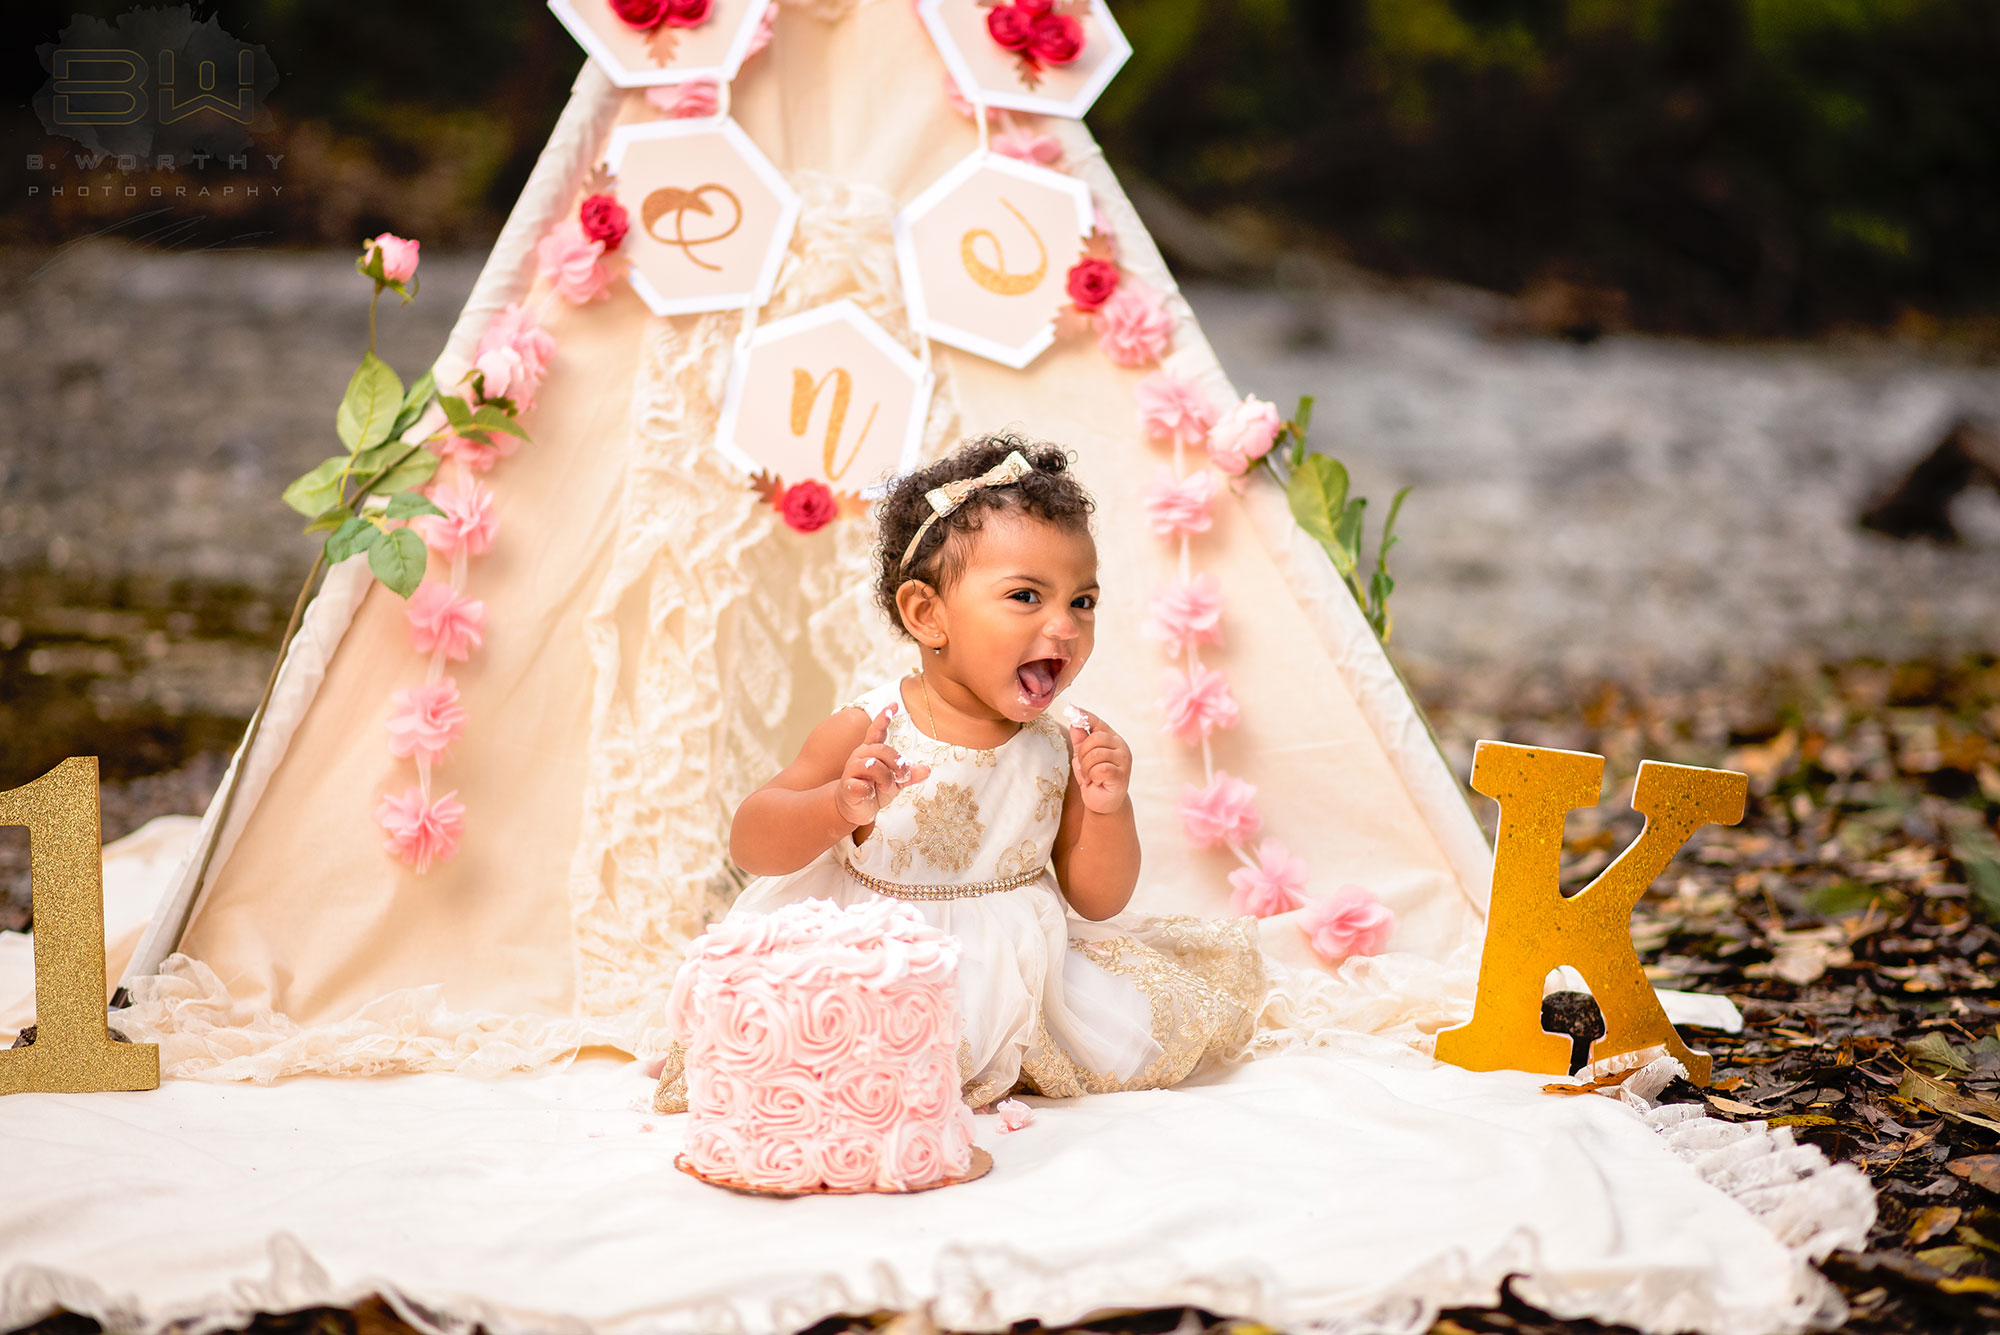 https://bworthyphotography.smugmug.com/BW-Website-Family-Session/Khaleesi-Cake-Smash